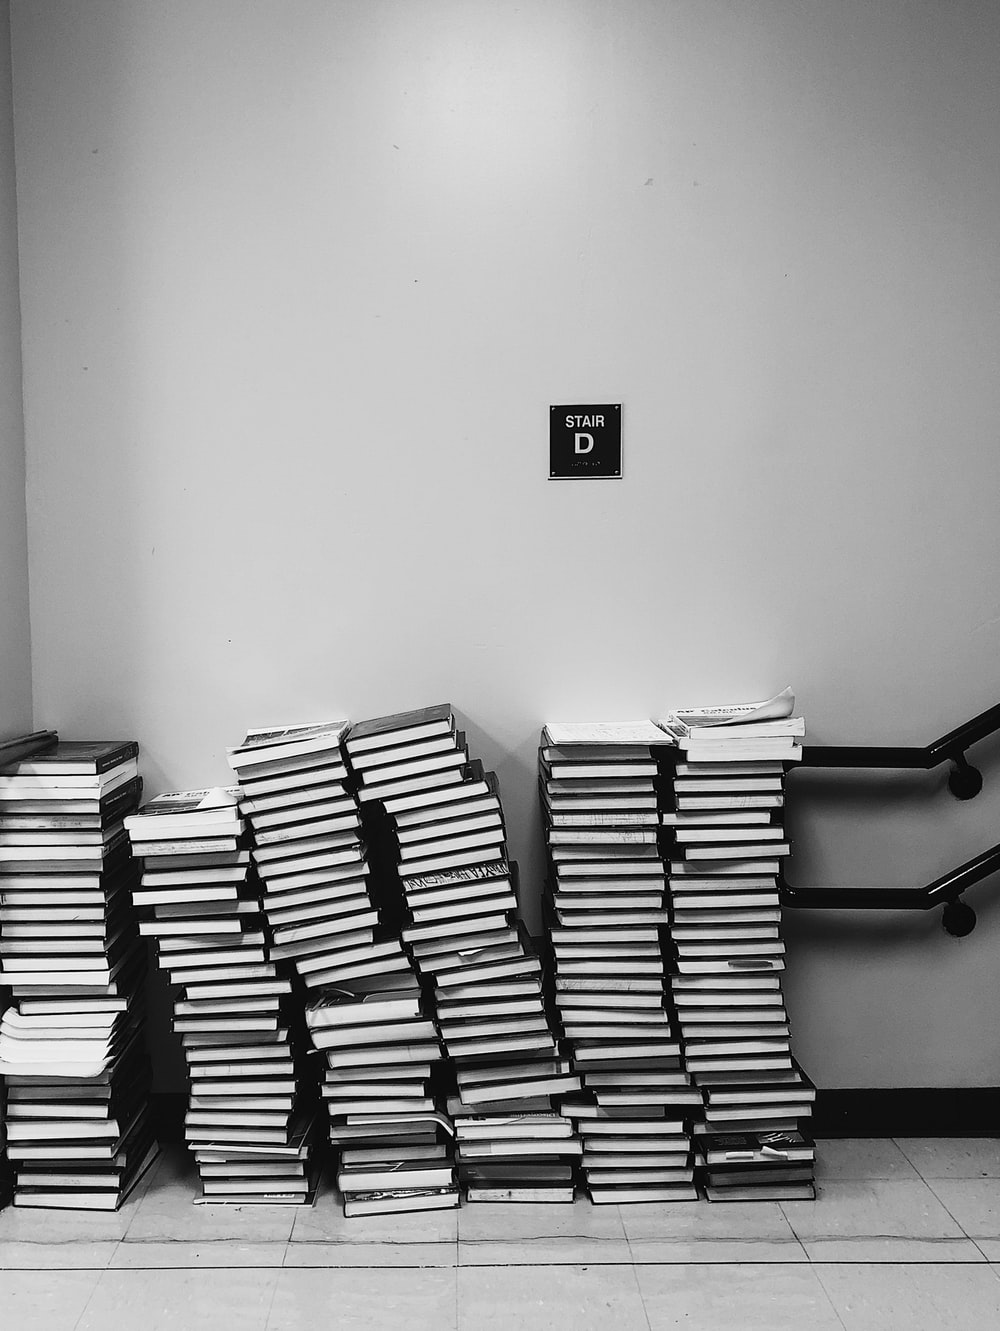 grayscale photography of pile of books